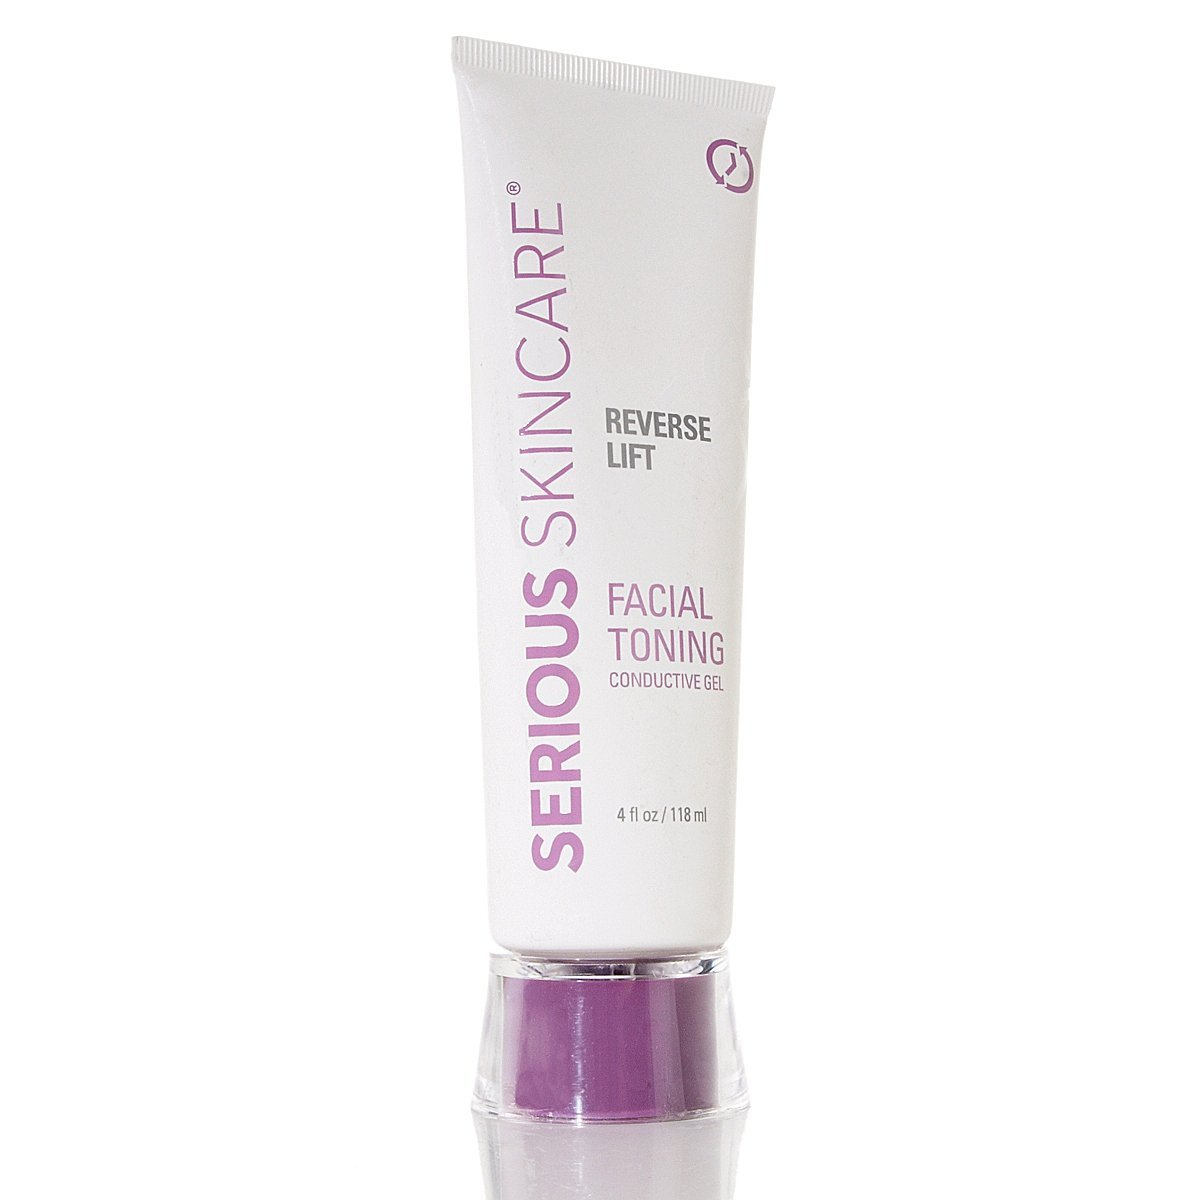 Serious Skincare Gel - just the gel, 4 oz